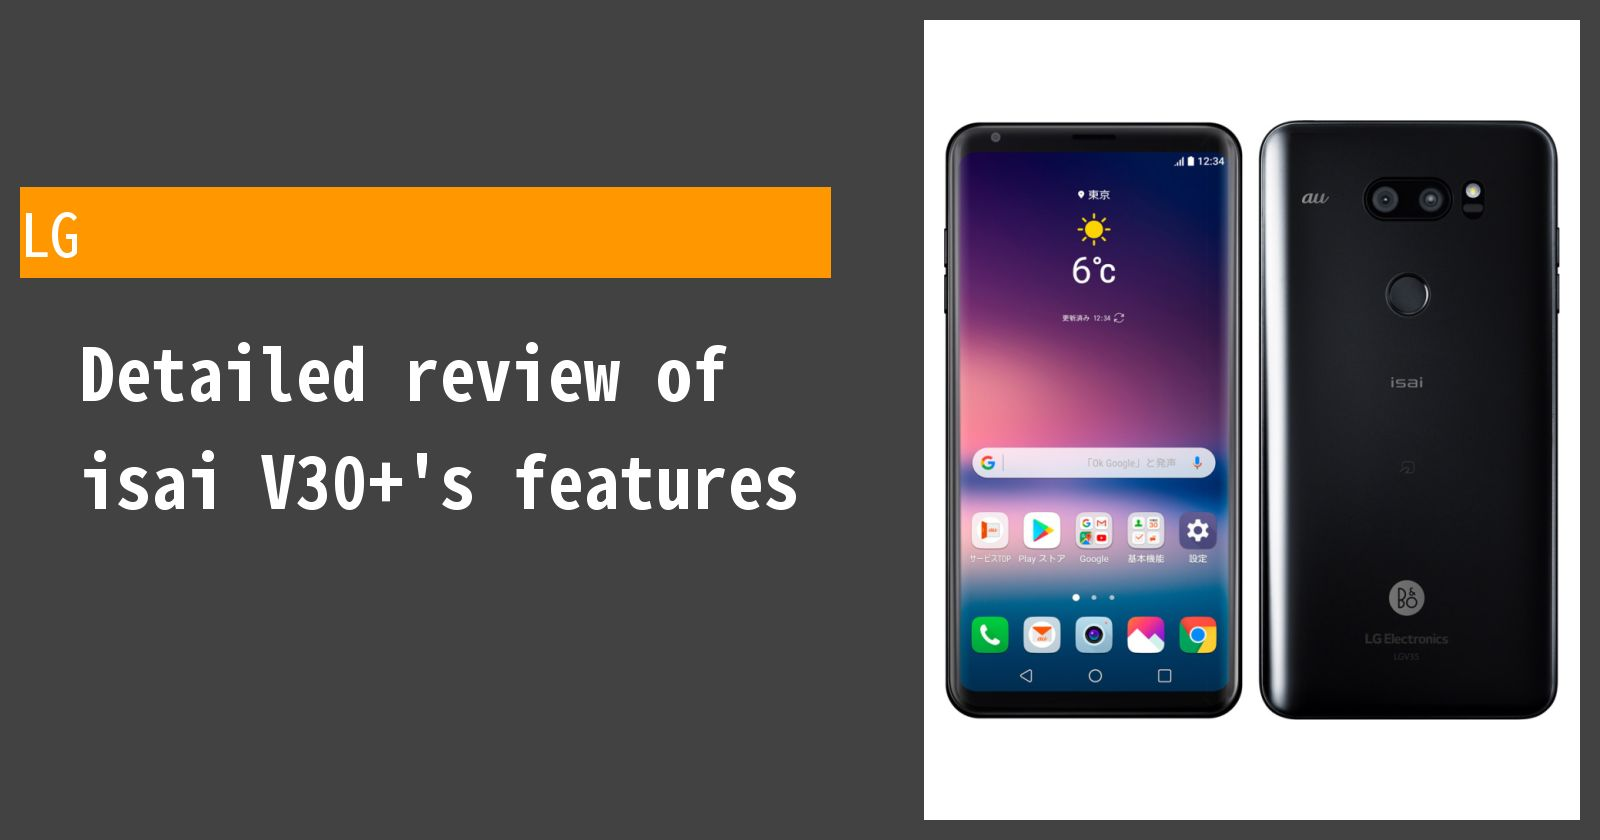 Detailed review of isai V30+ LGV35 au's features